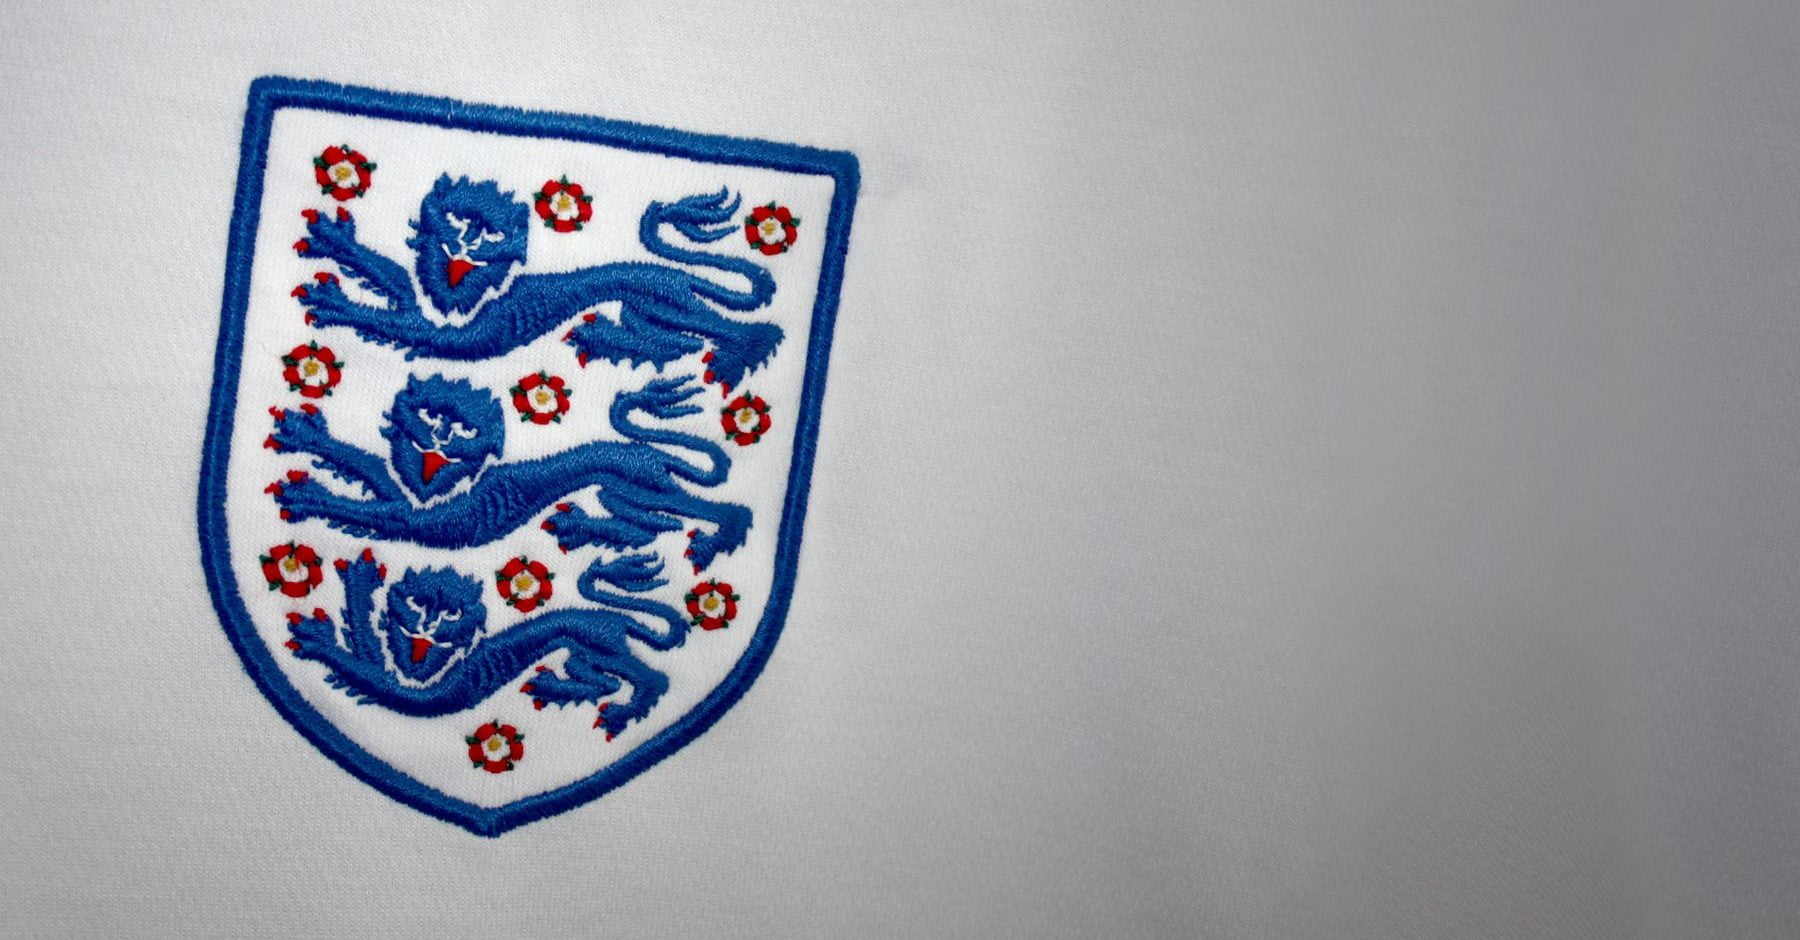 When did England not qualify for the World Cup and Euros?